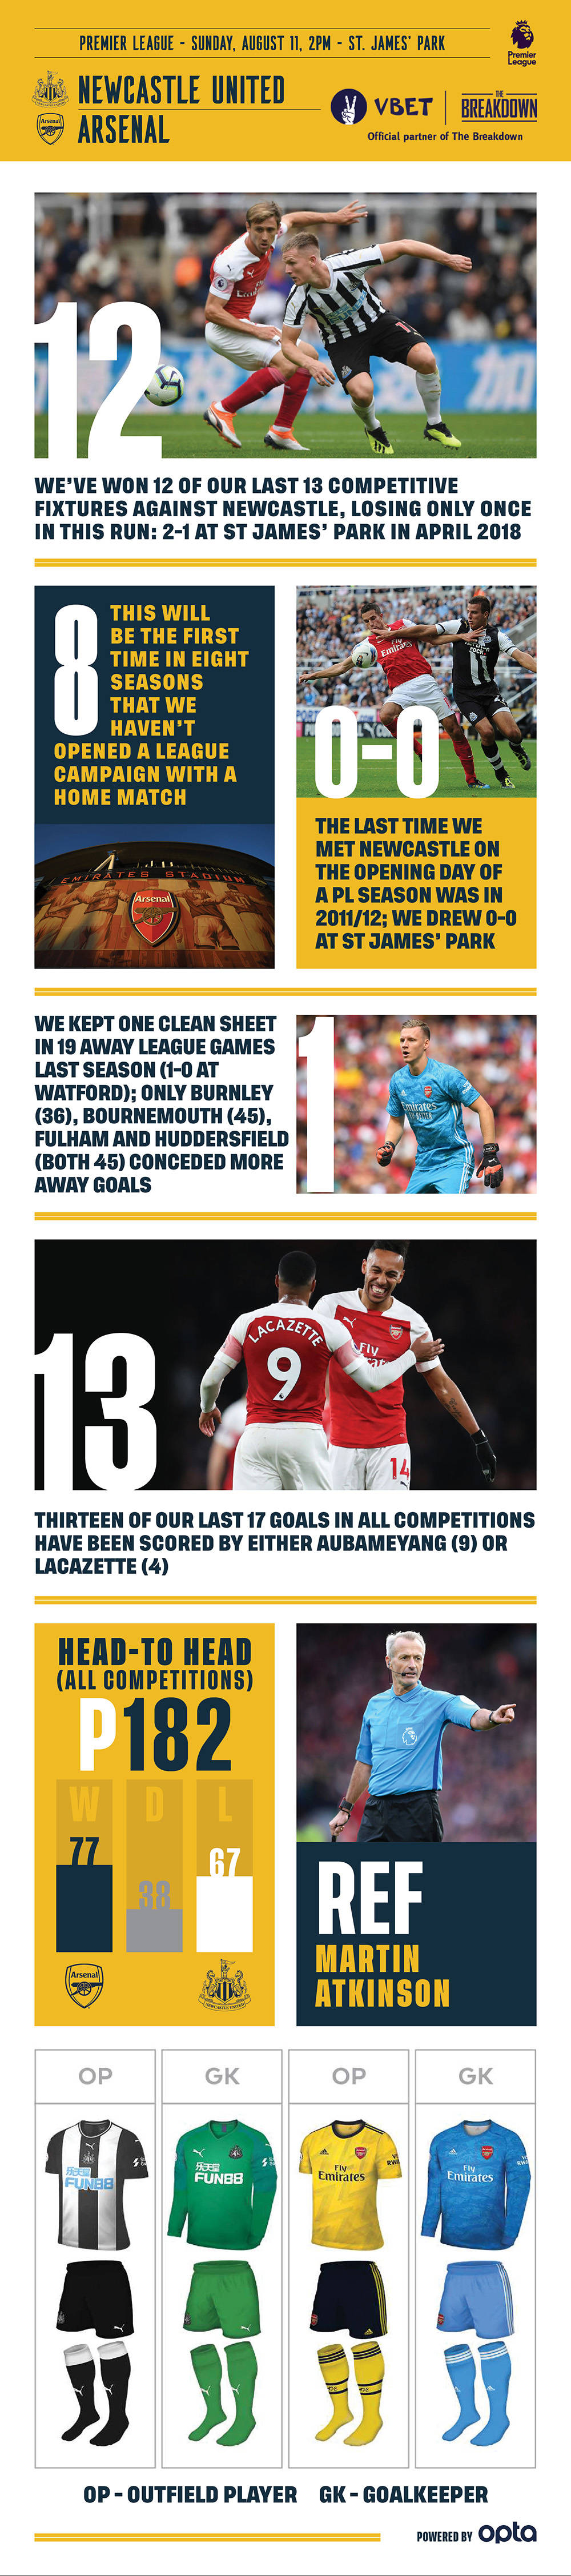 Newcastle United vs Arsenal preview: latest team news, probable line